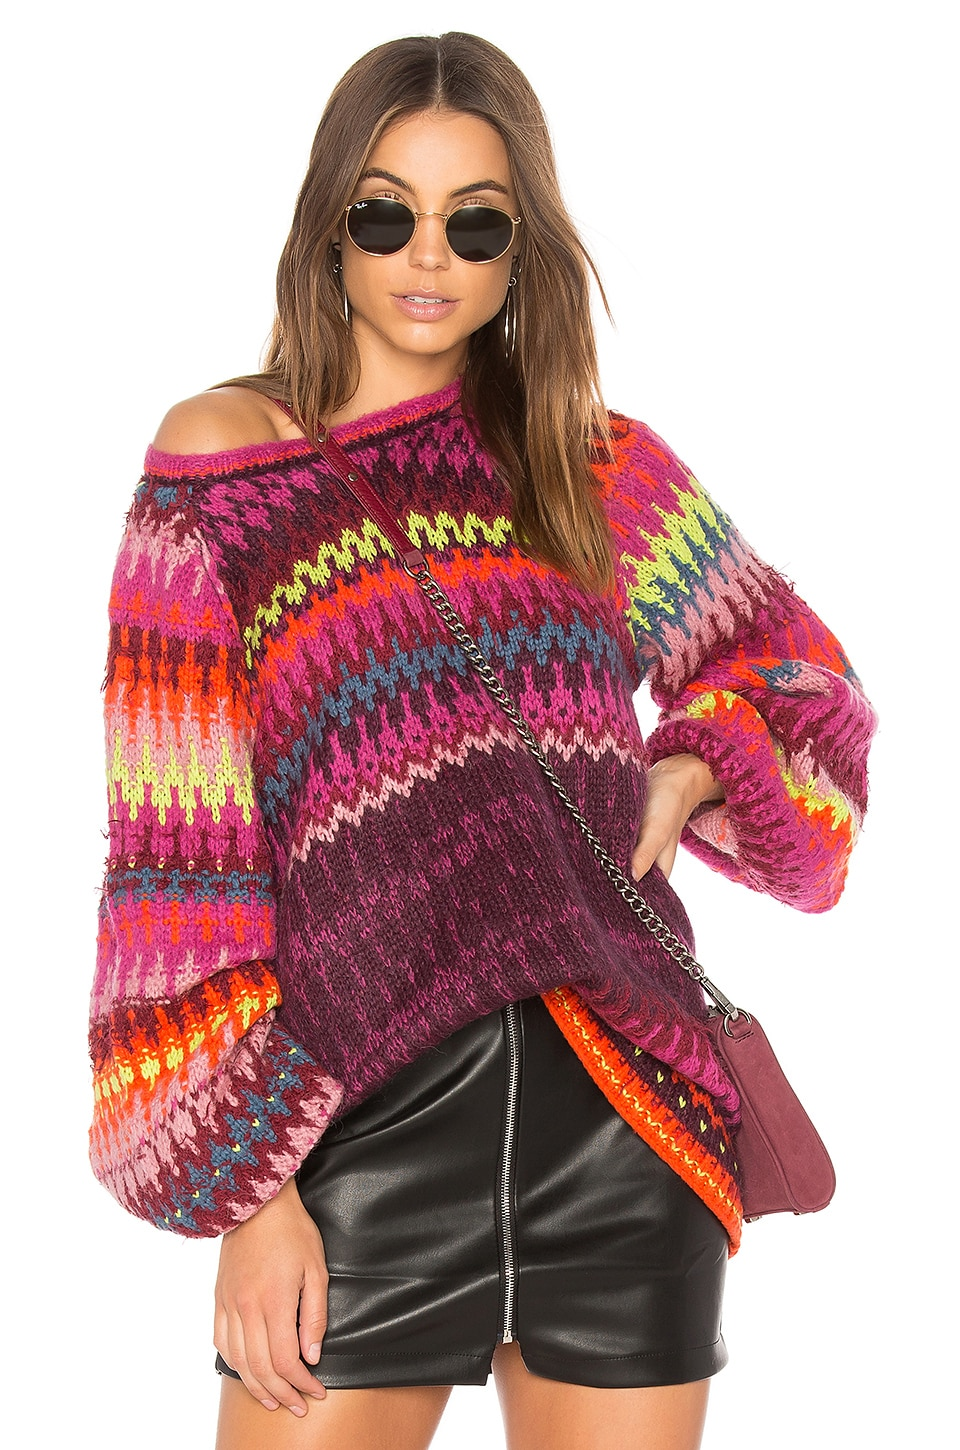 Free People Castles in the Sky Sweater in Multi